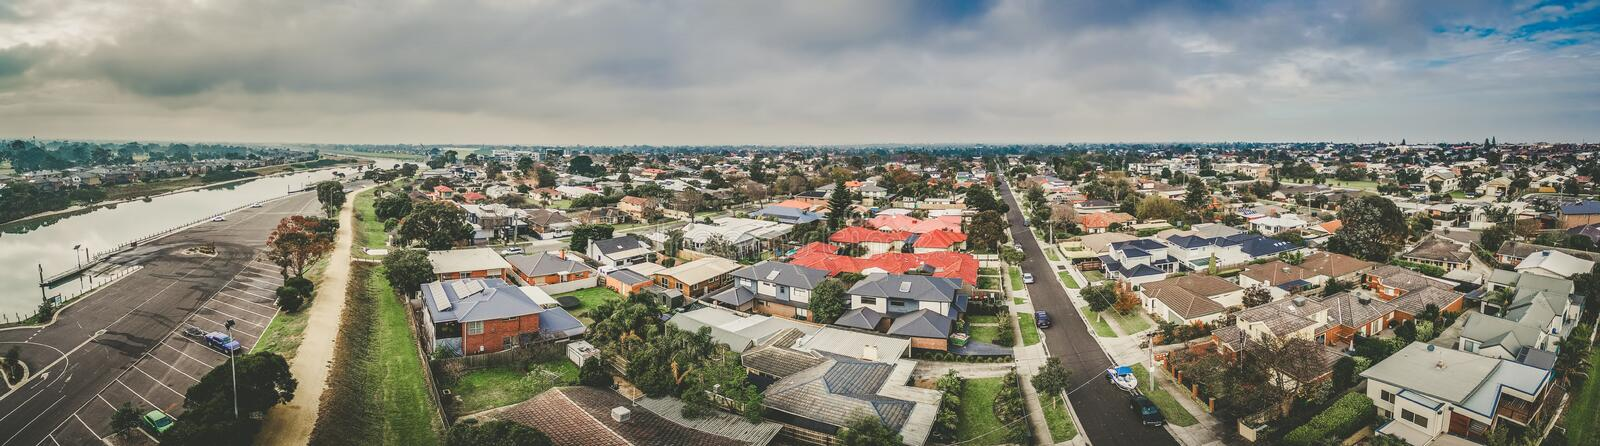 Aerial panorama of Patterson River and urban area. Carrum, Melbourne, Australia stock photo